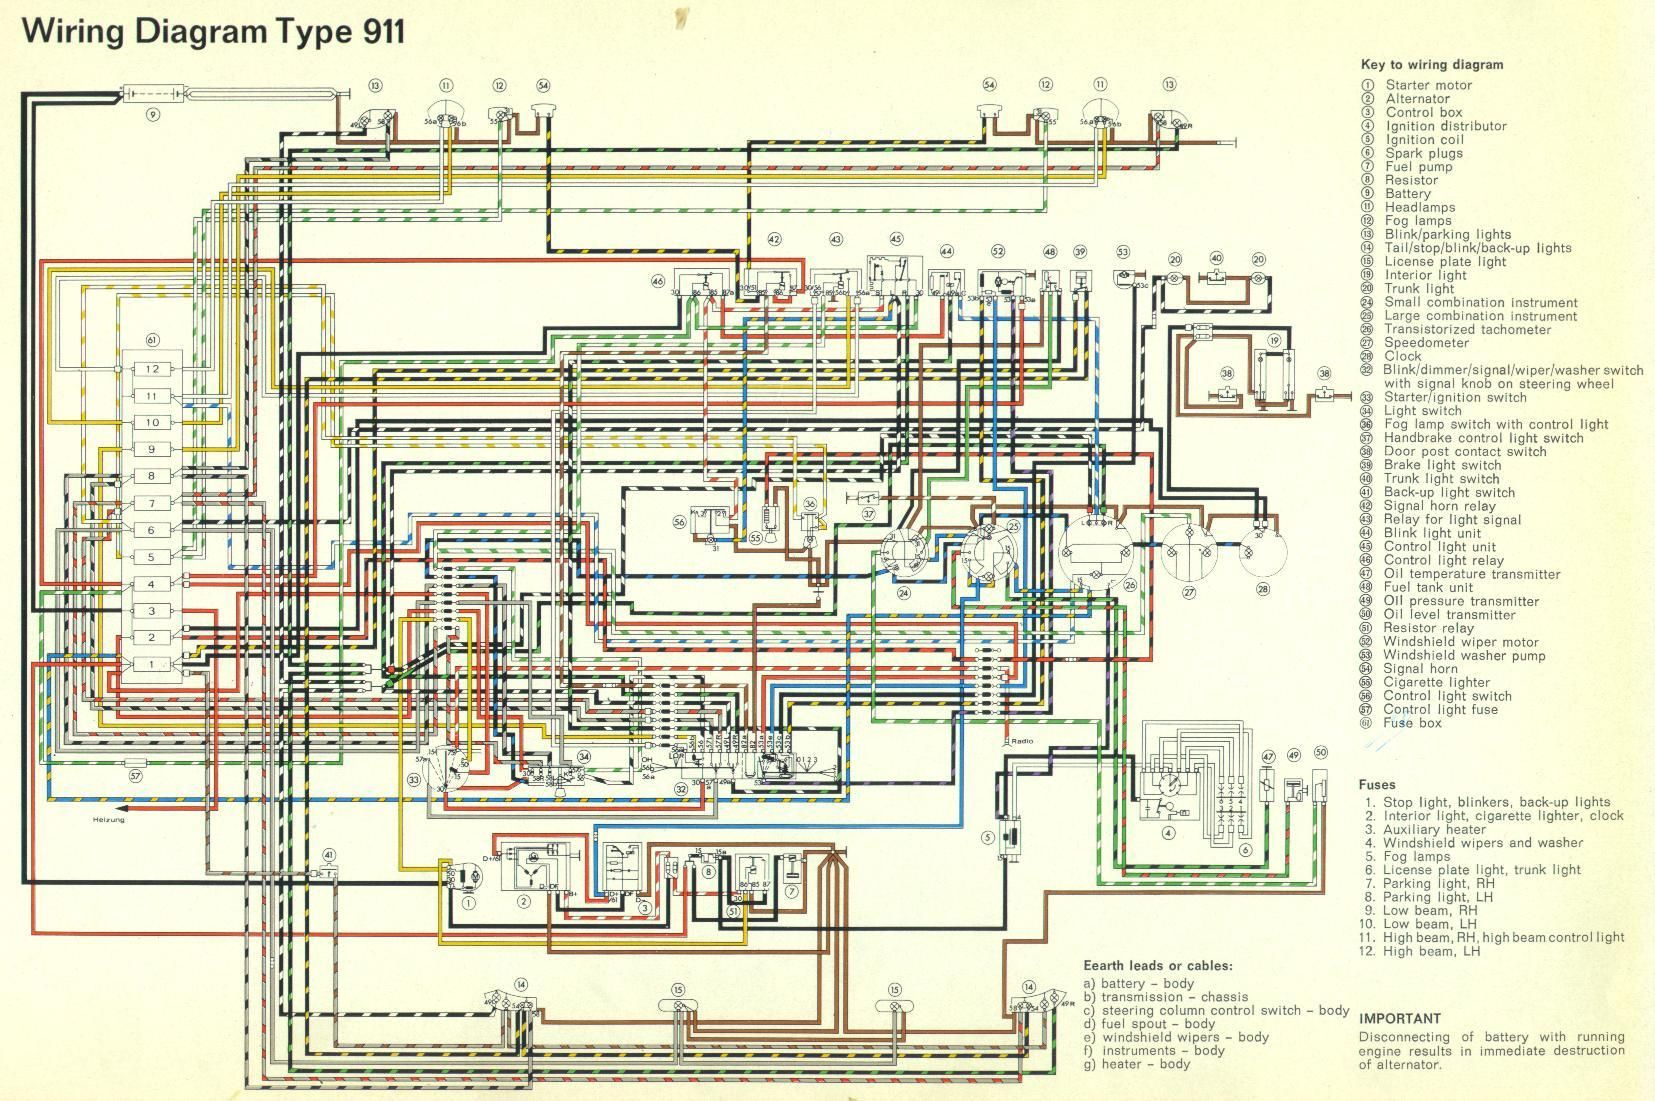 1973 porsche 911 wiring diagram